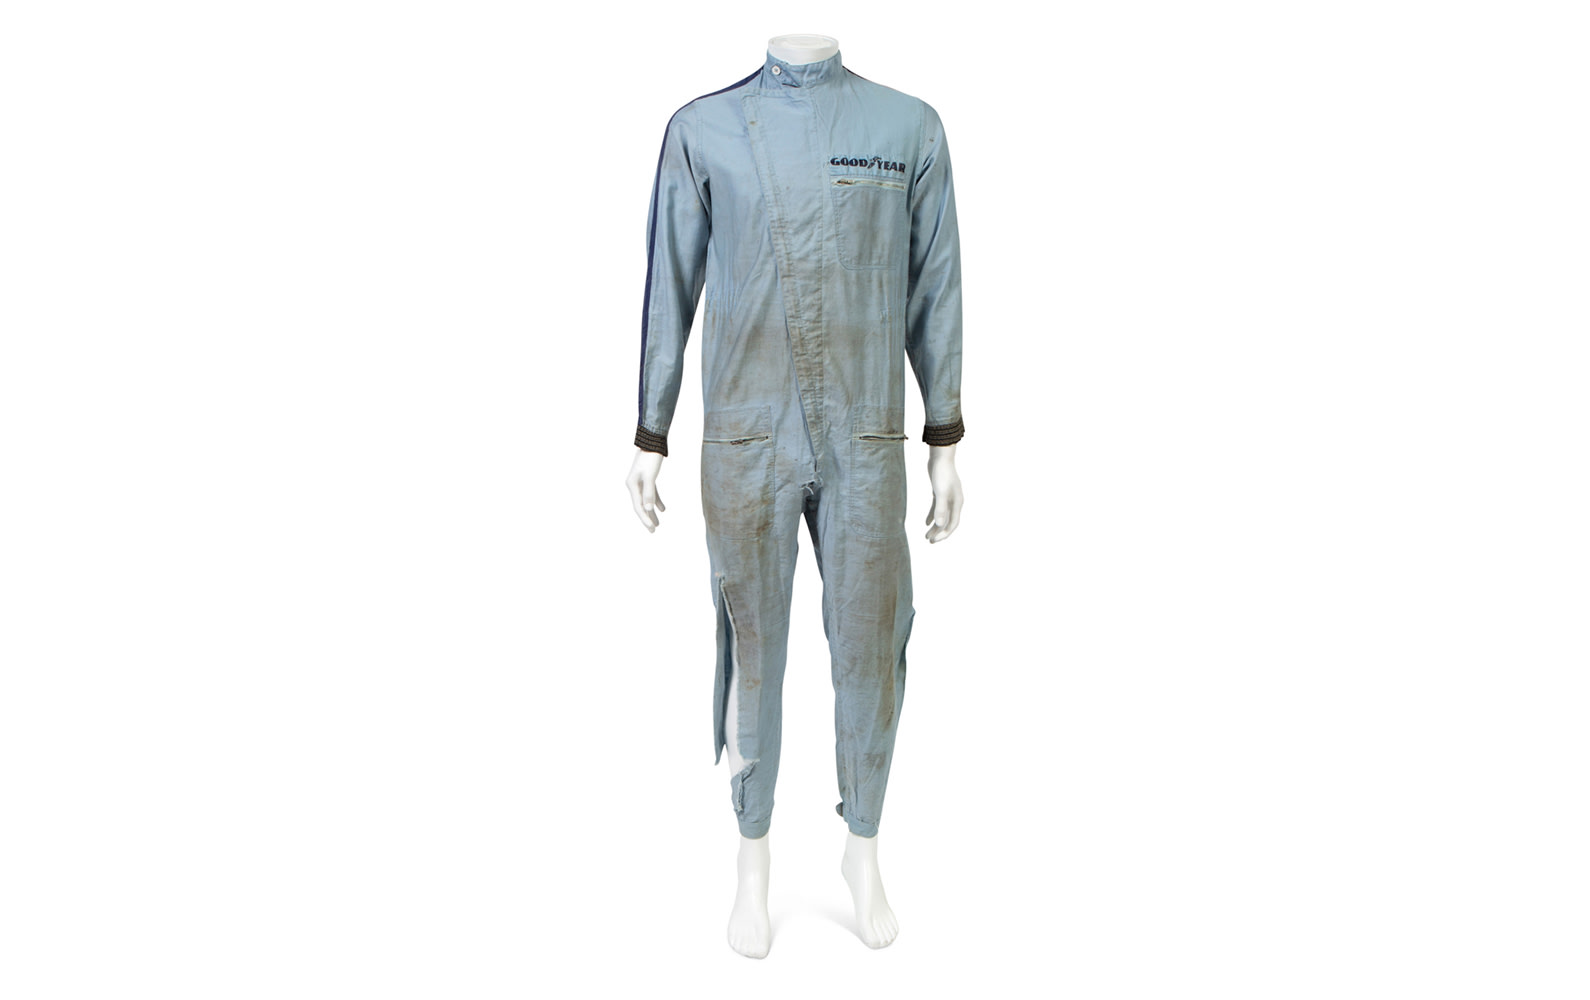 Les Leston Ltd. One-Piece Driving Suit Worn by Phil Hill During Filming of Movie Grand Prix